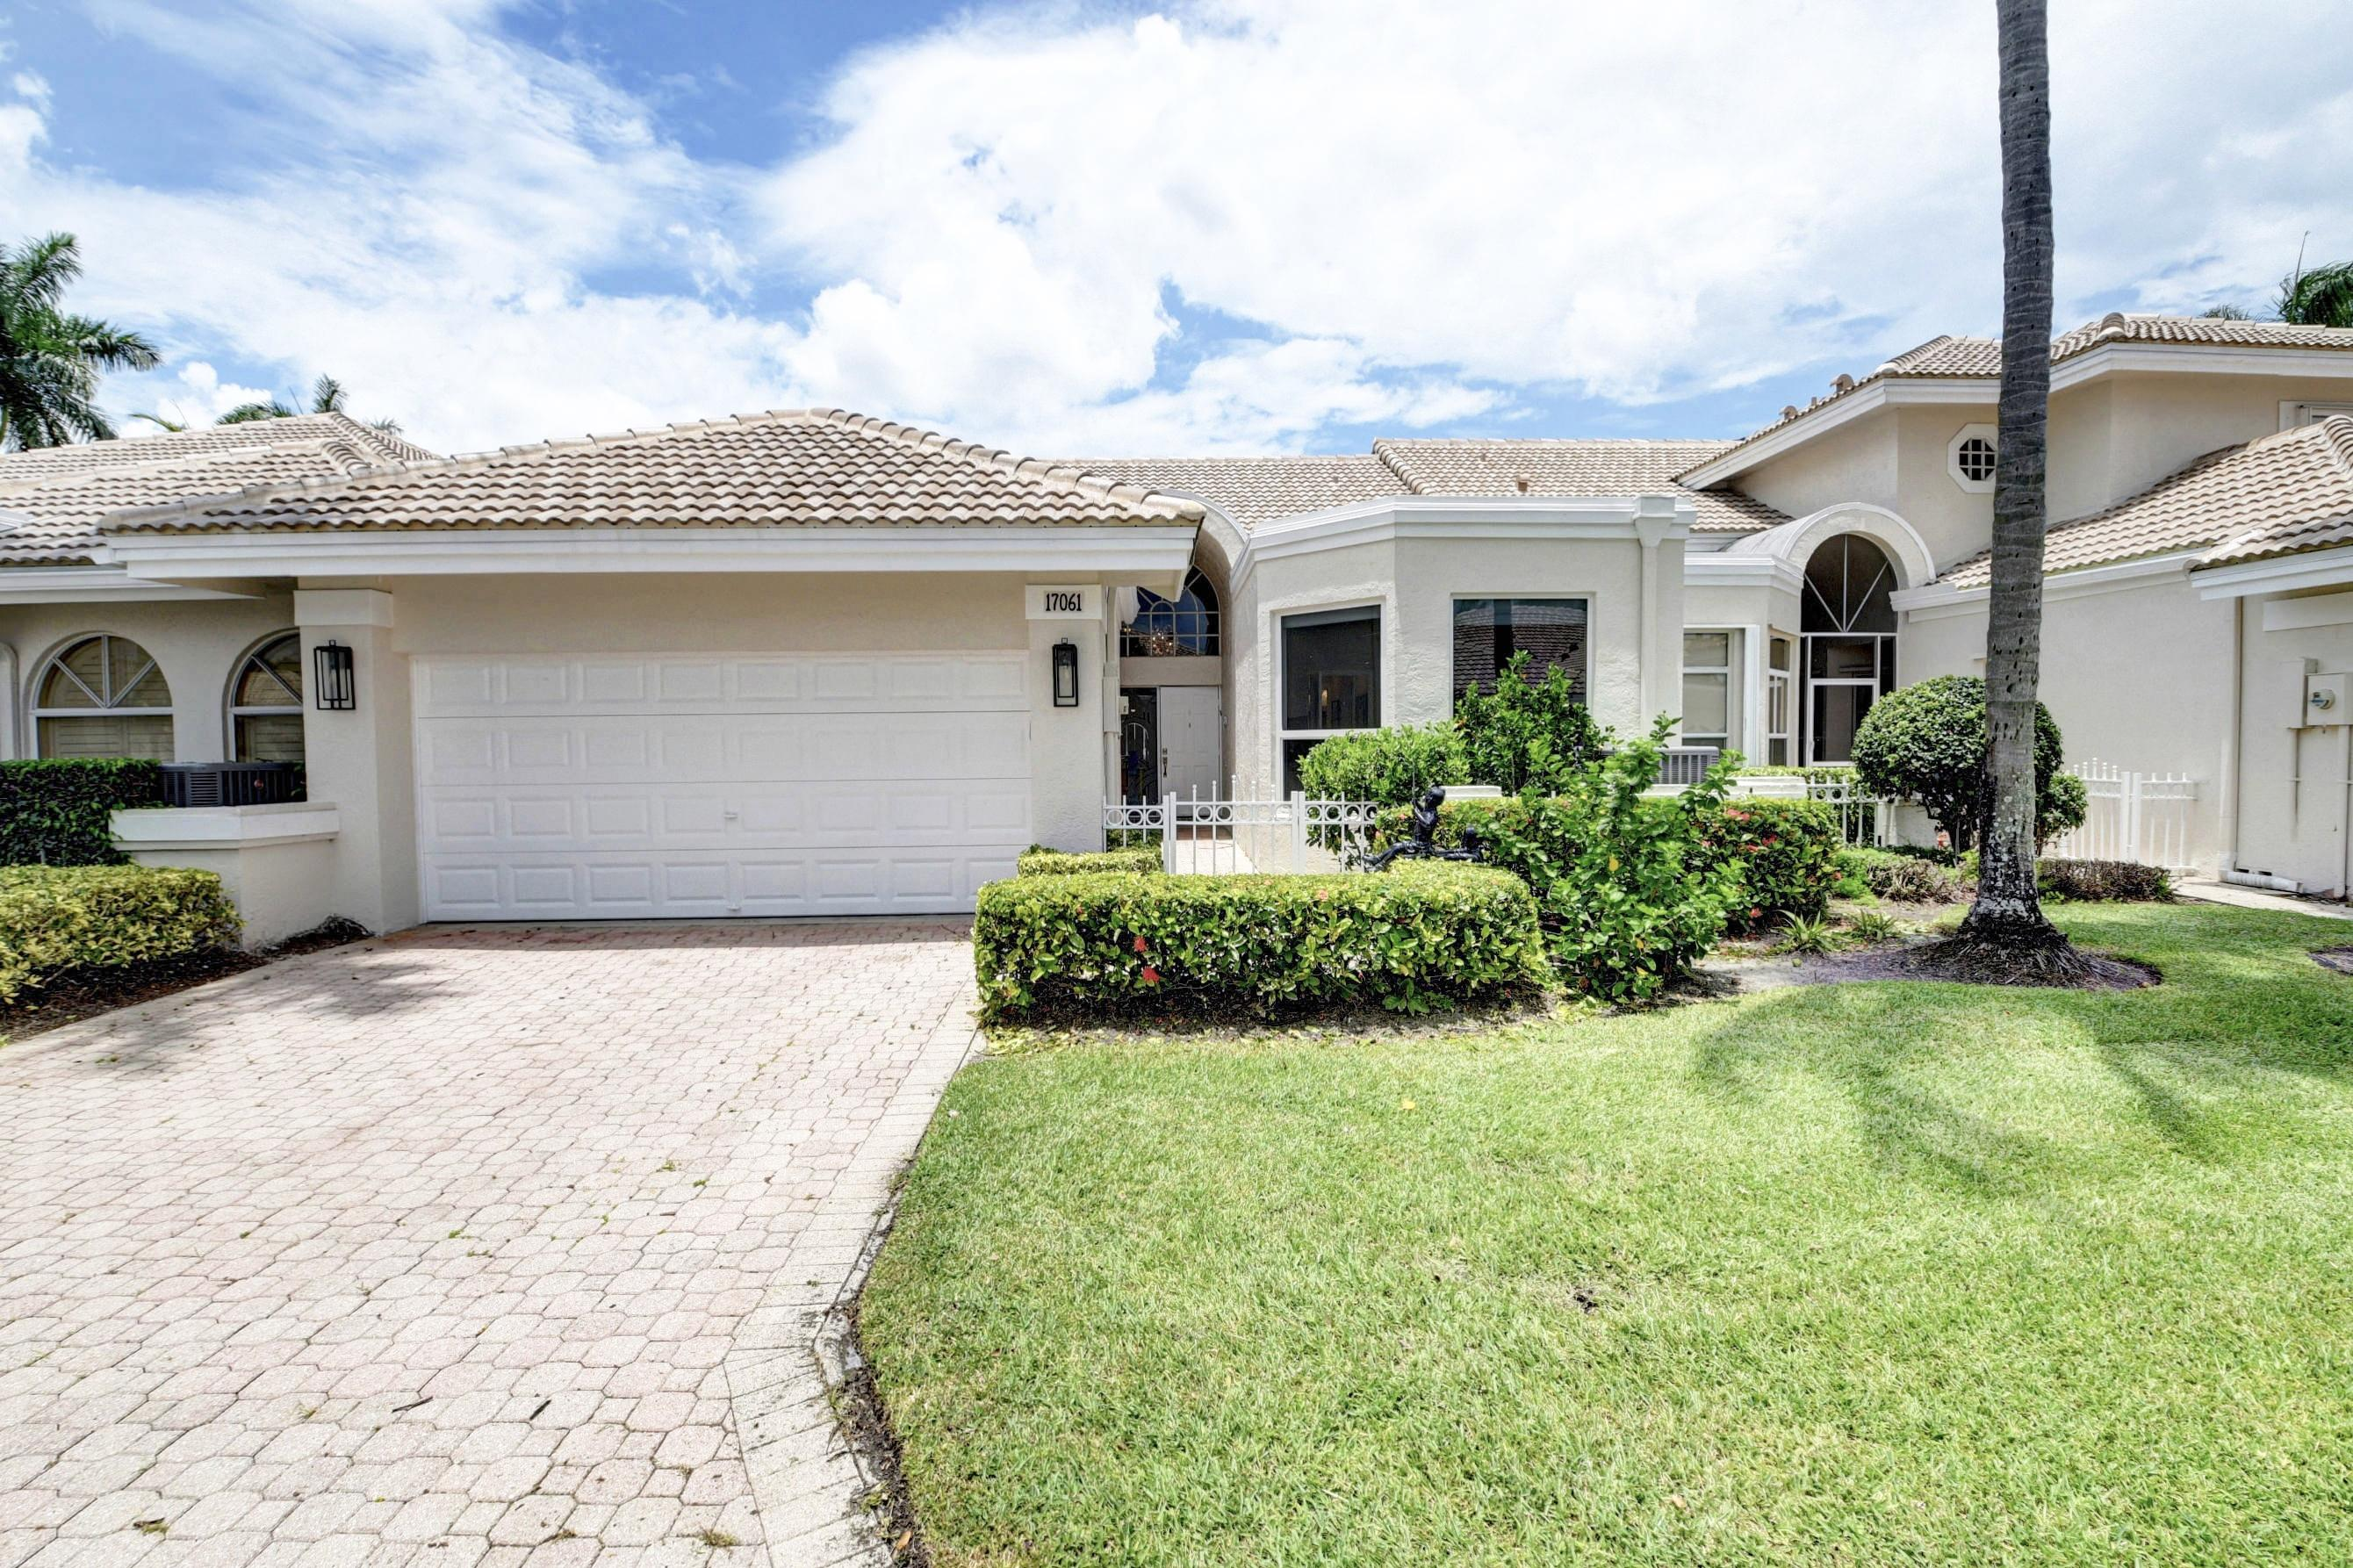 Details for 17061 Windsor Parke Court, Boca Raton, FL 33496